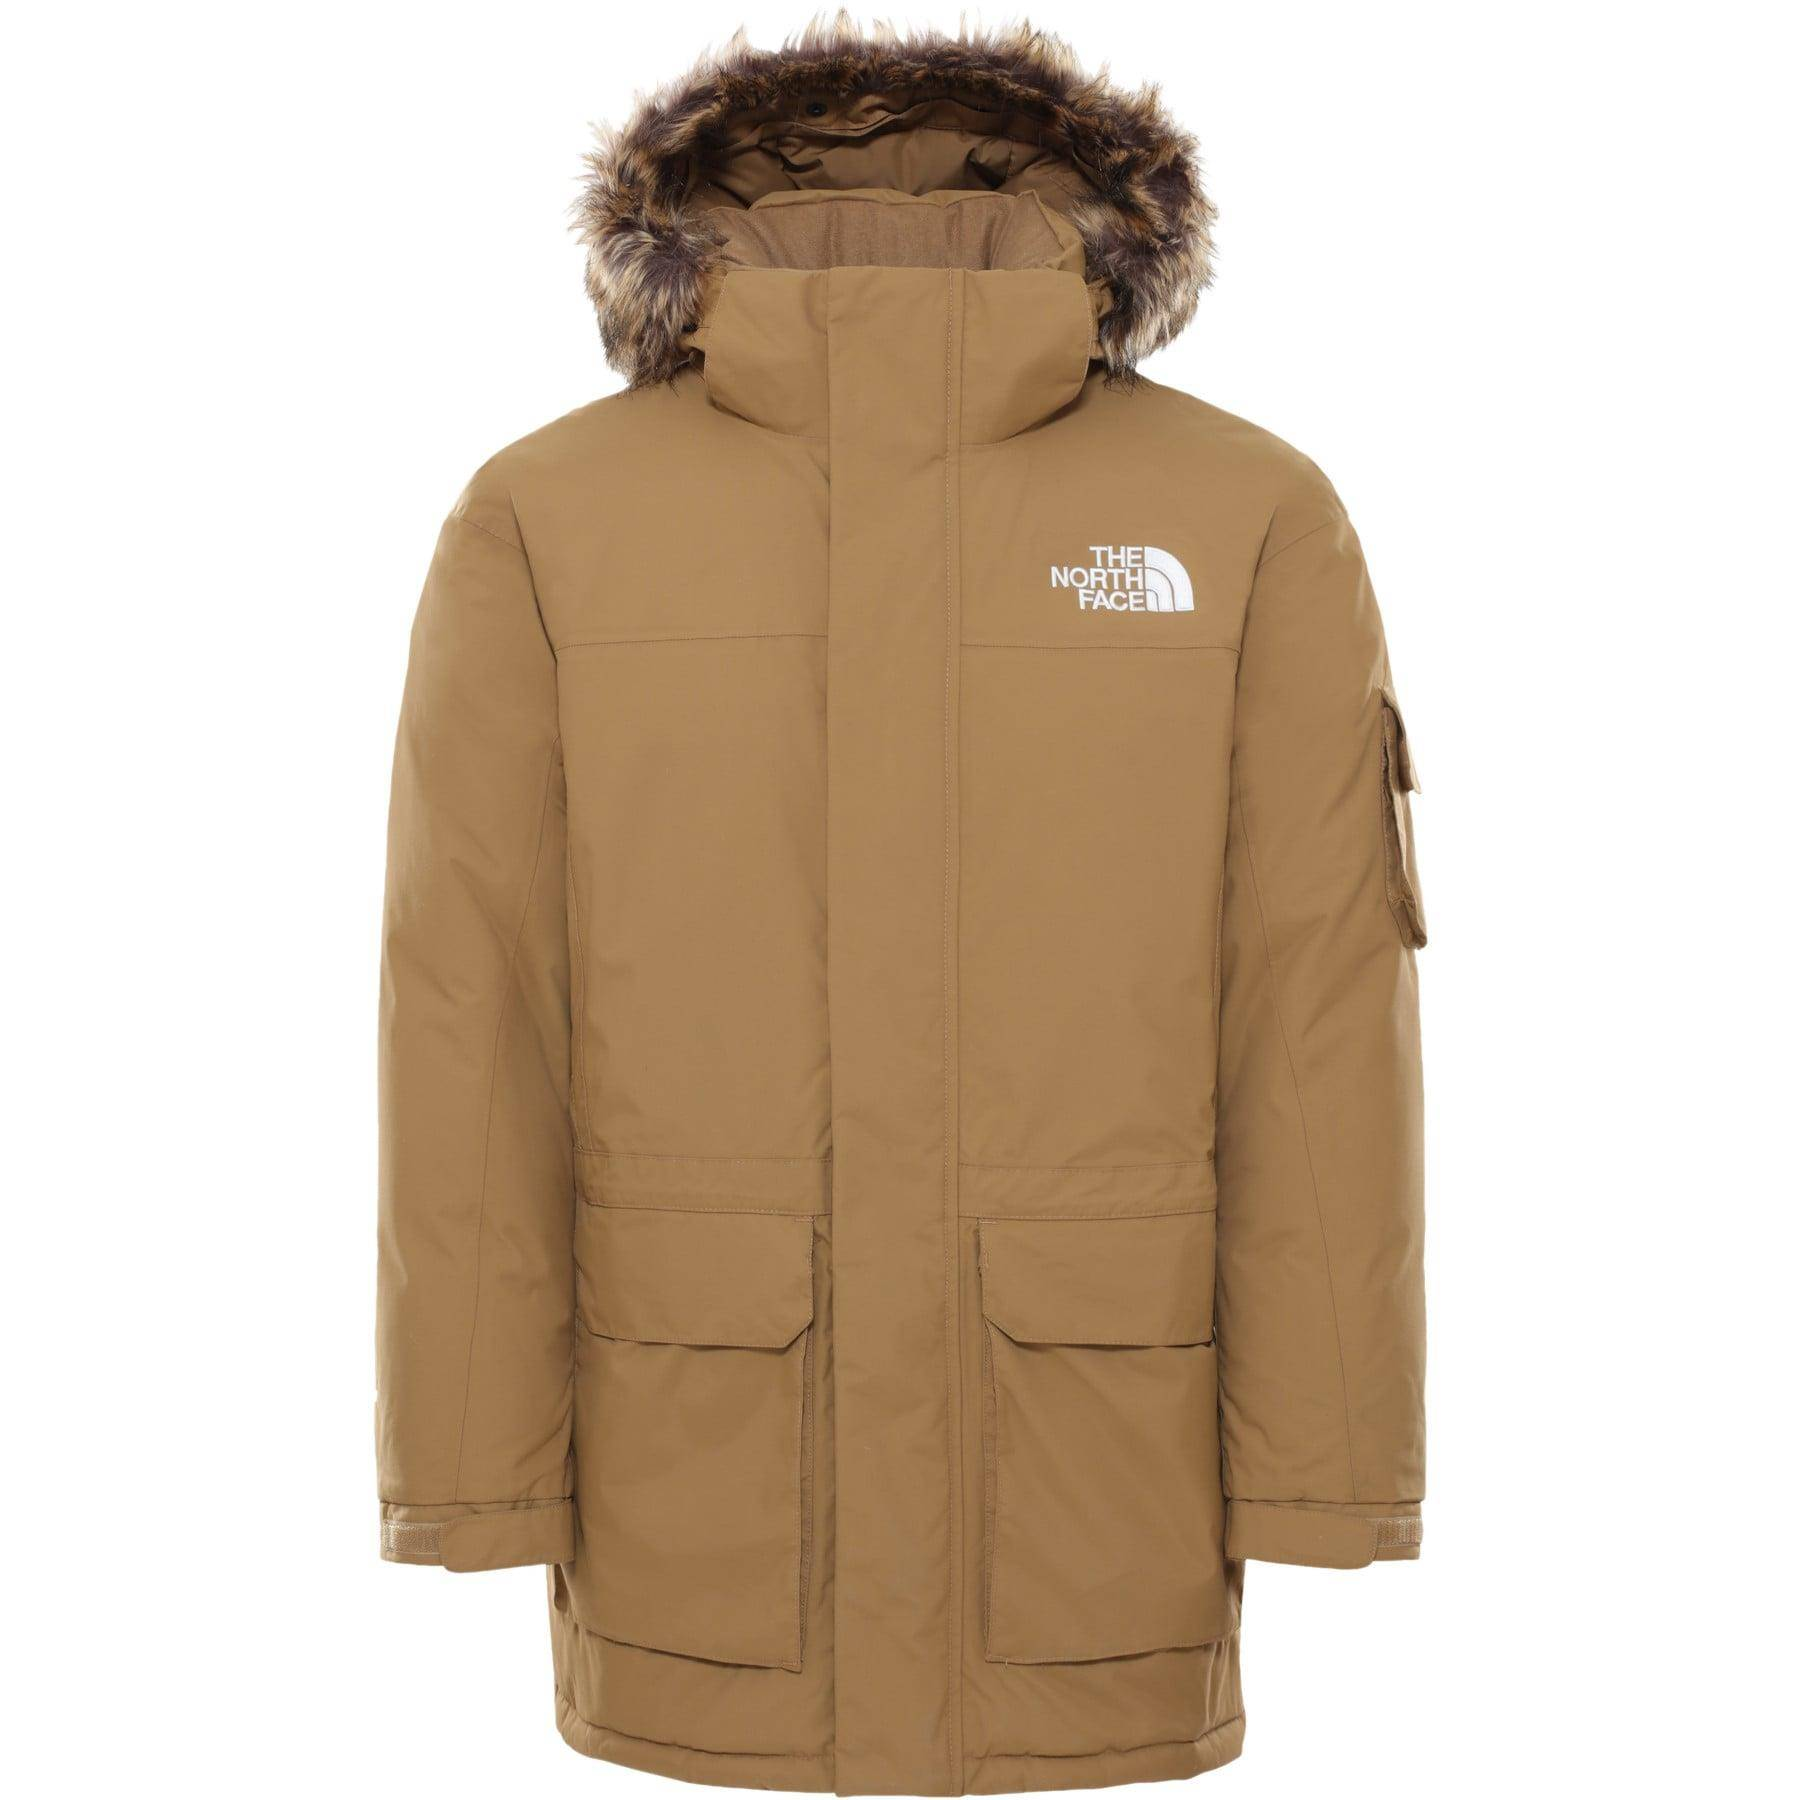 Kurtka The North Face Recycled Mcmurdo T94M8G173